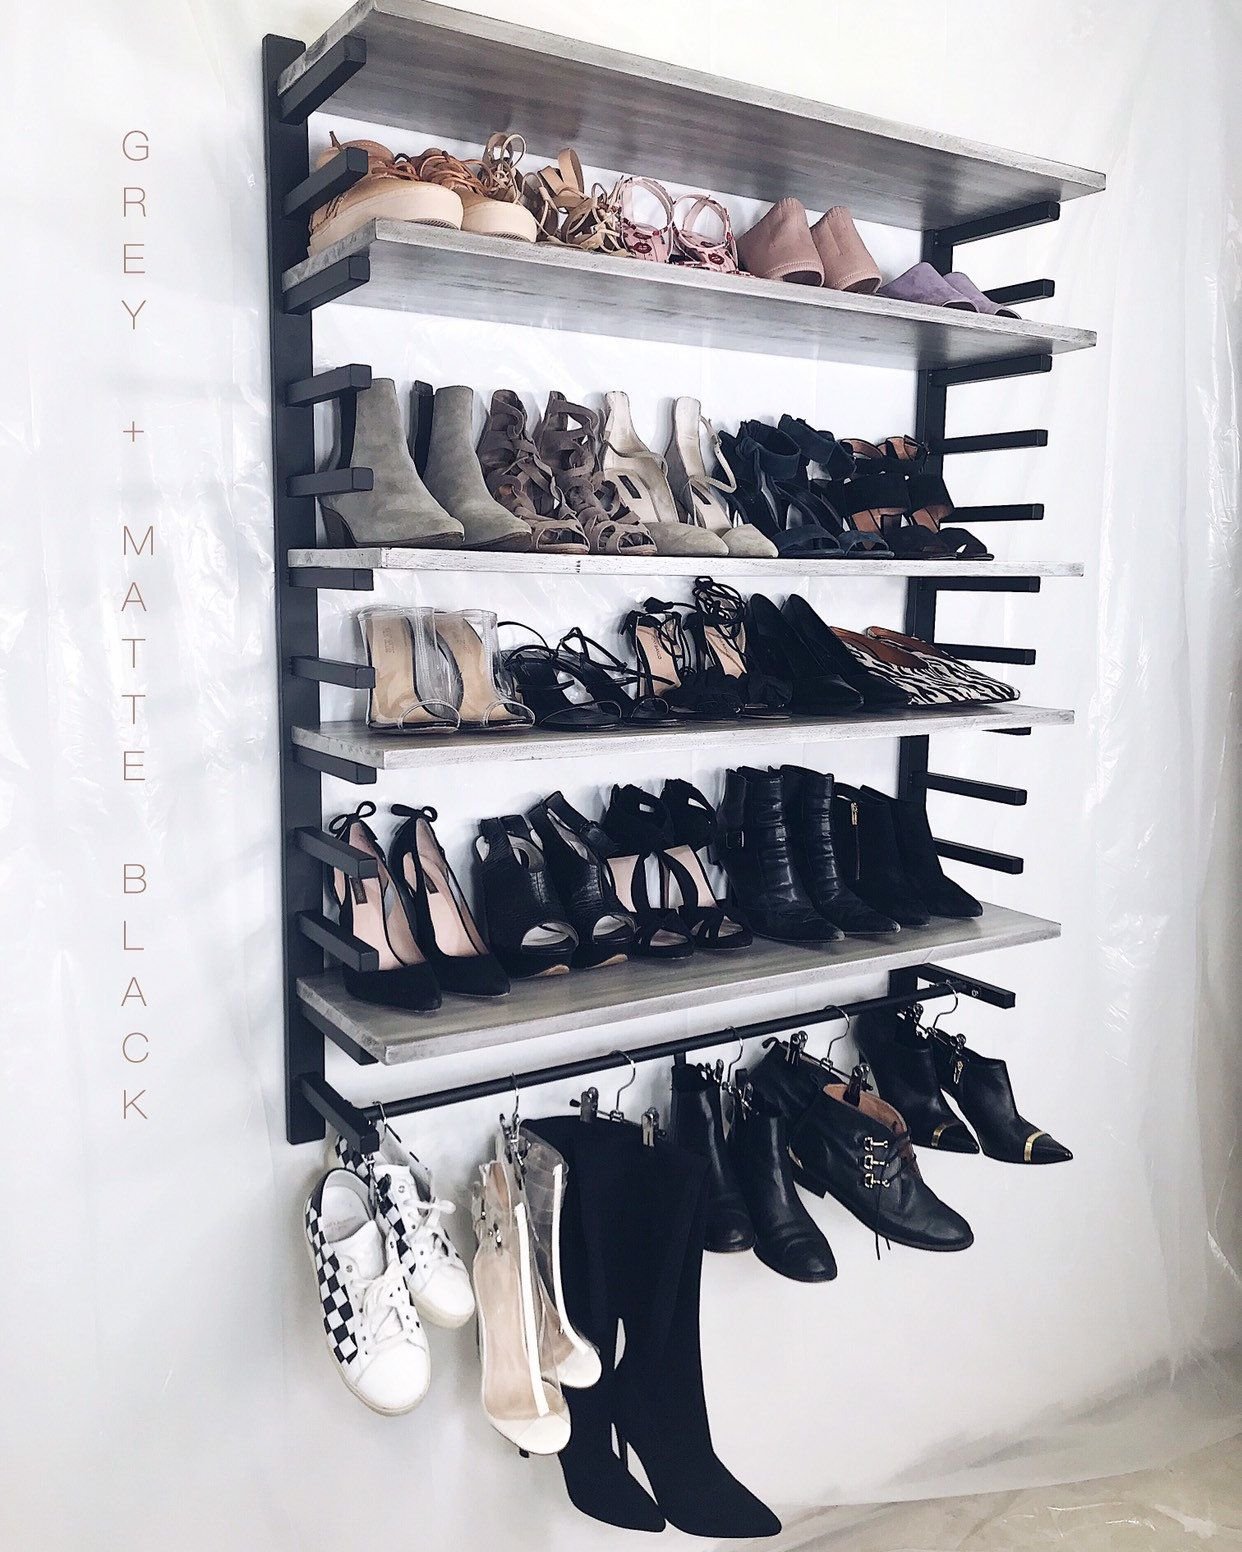 Grey Black Metal Wall Mounted Shoe Organizer With Boot Hanger By Bleachla On Etsy Https Www Etsy Com Listing 6801389 Boot Hanger Shoe Organizer Metal Walls